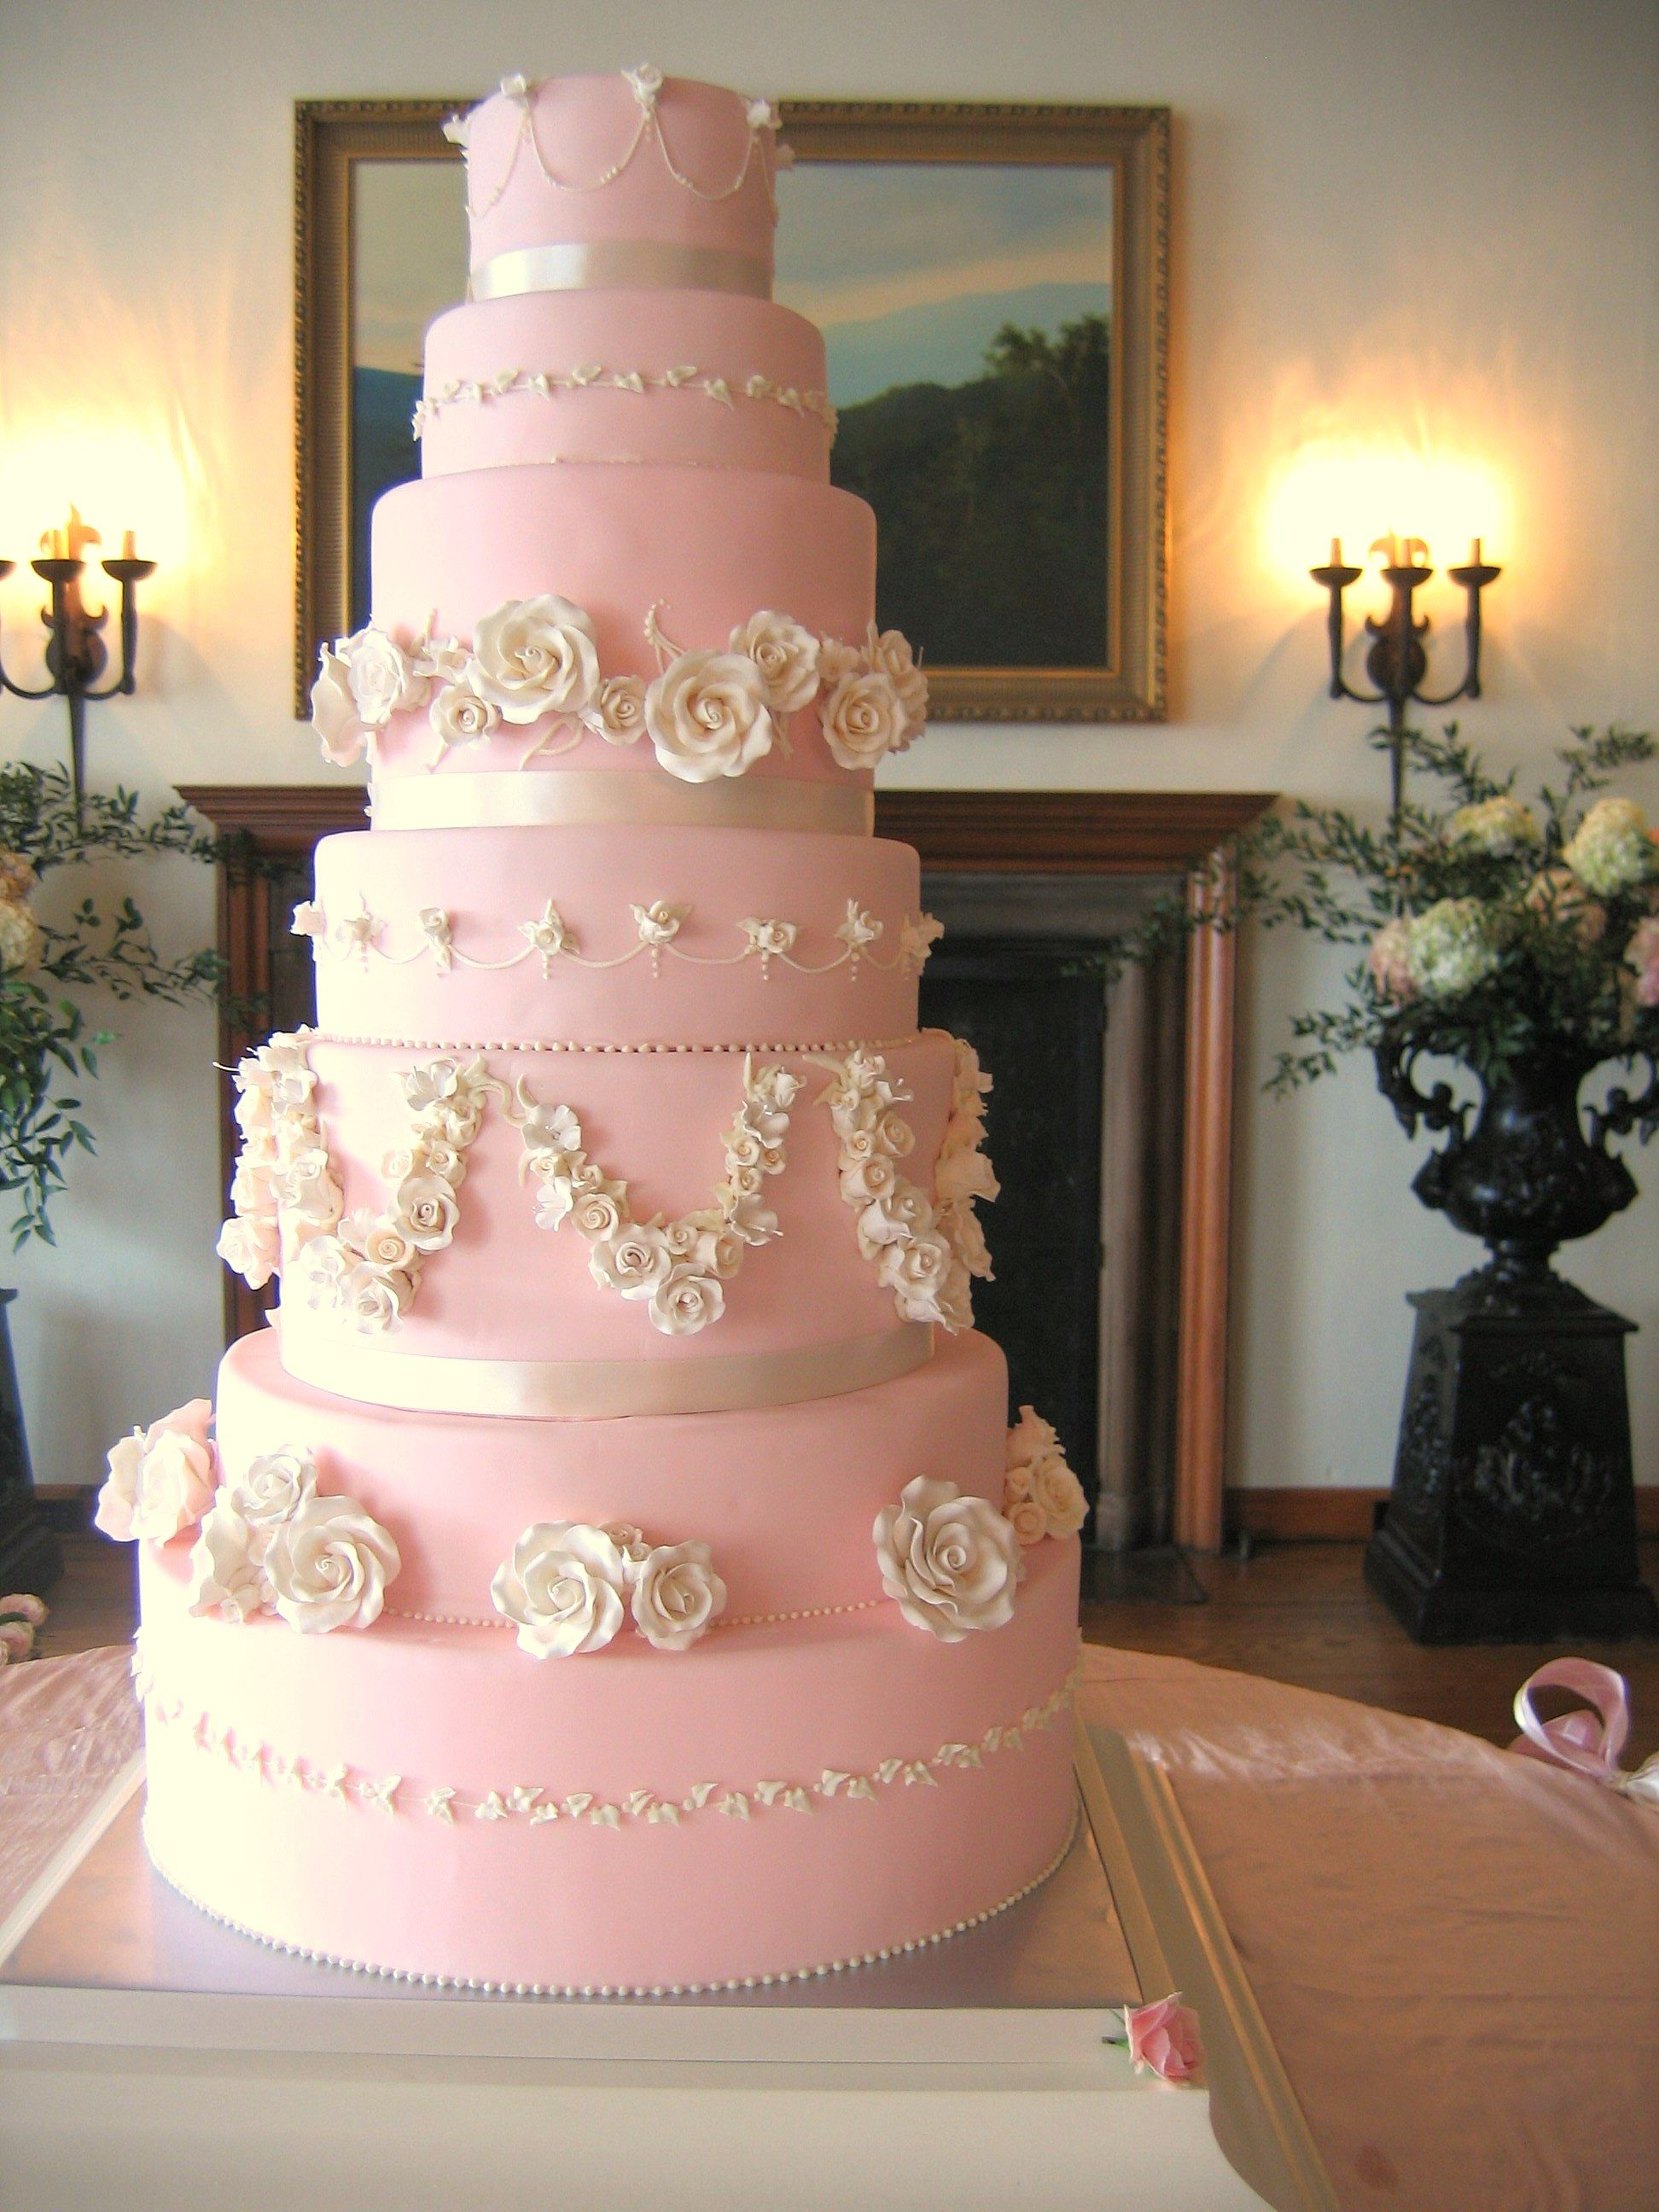 Magpies Bakery Knoxville, TN Custom Pink Buttercream Cake With Gum Paste  Floral Accessories. #